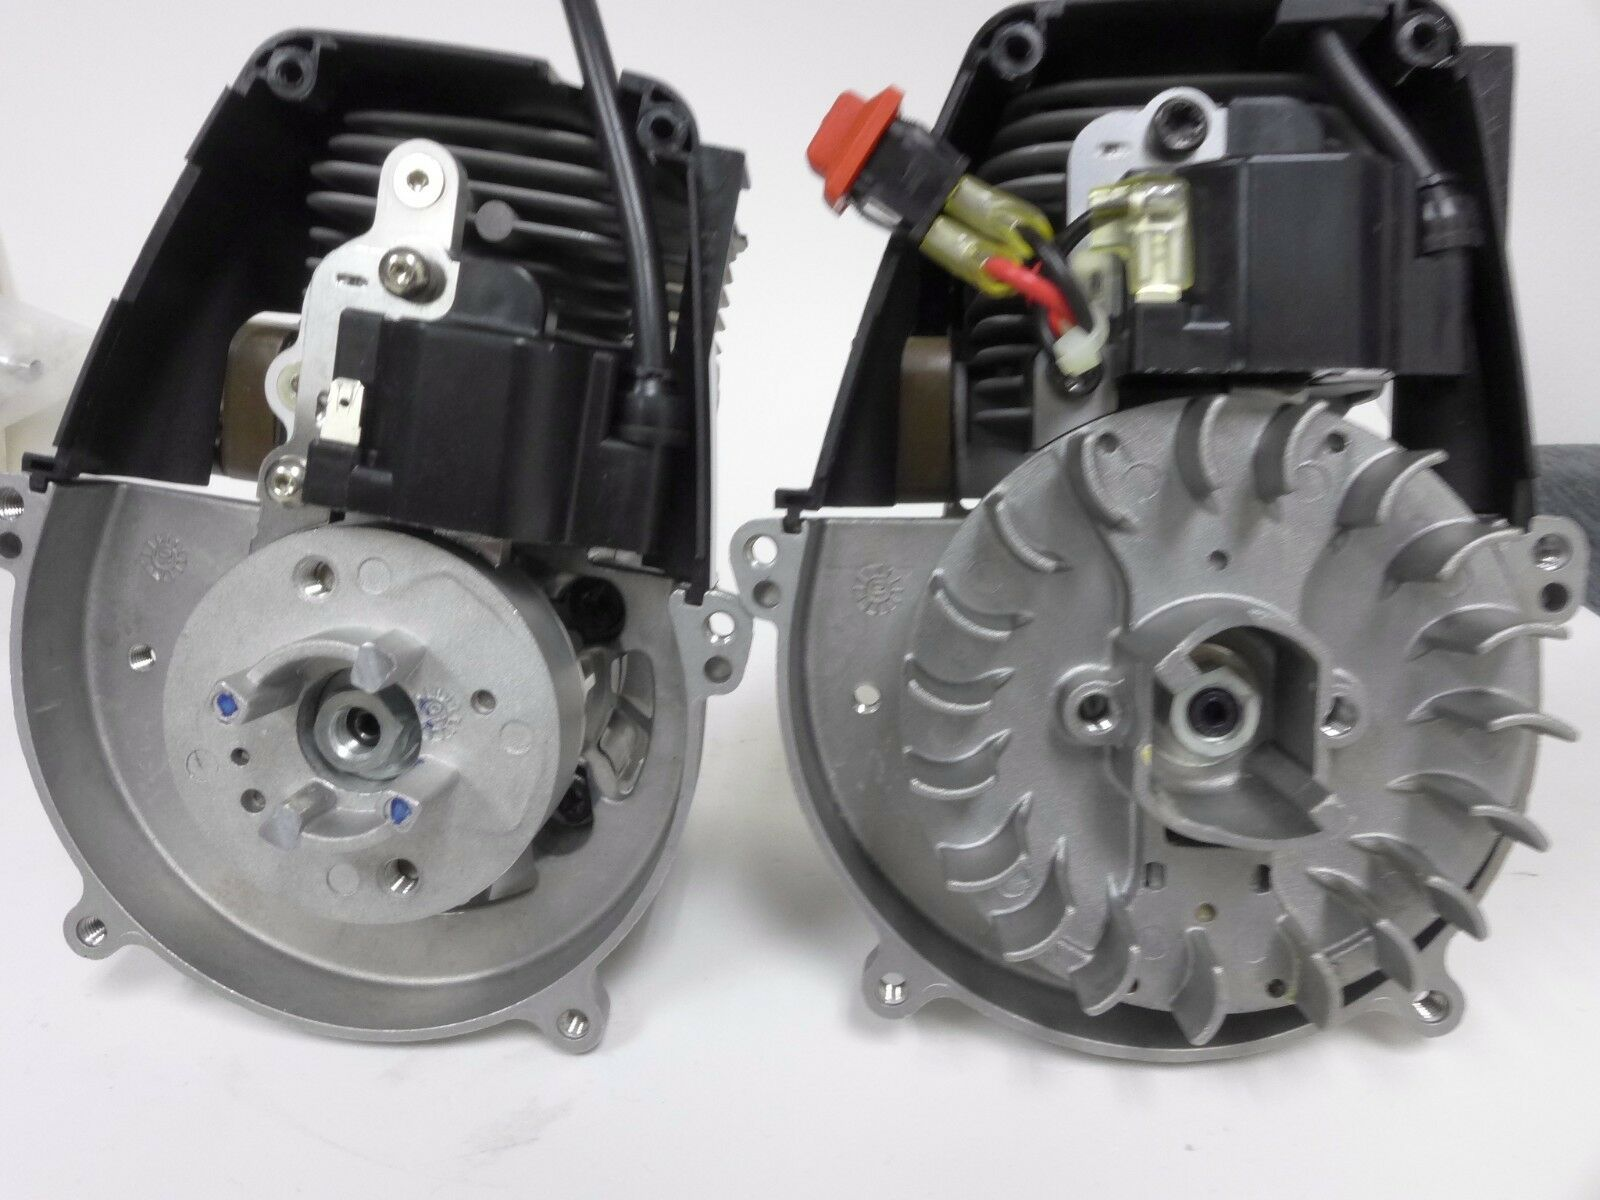 VRacing Competition Tuning Ignition 1 5 Gas Engine HPI Baja Losi 5T Duratrax